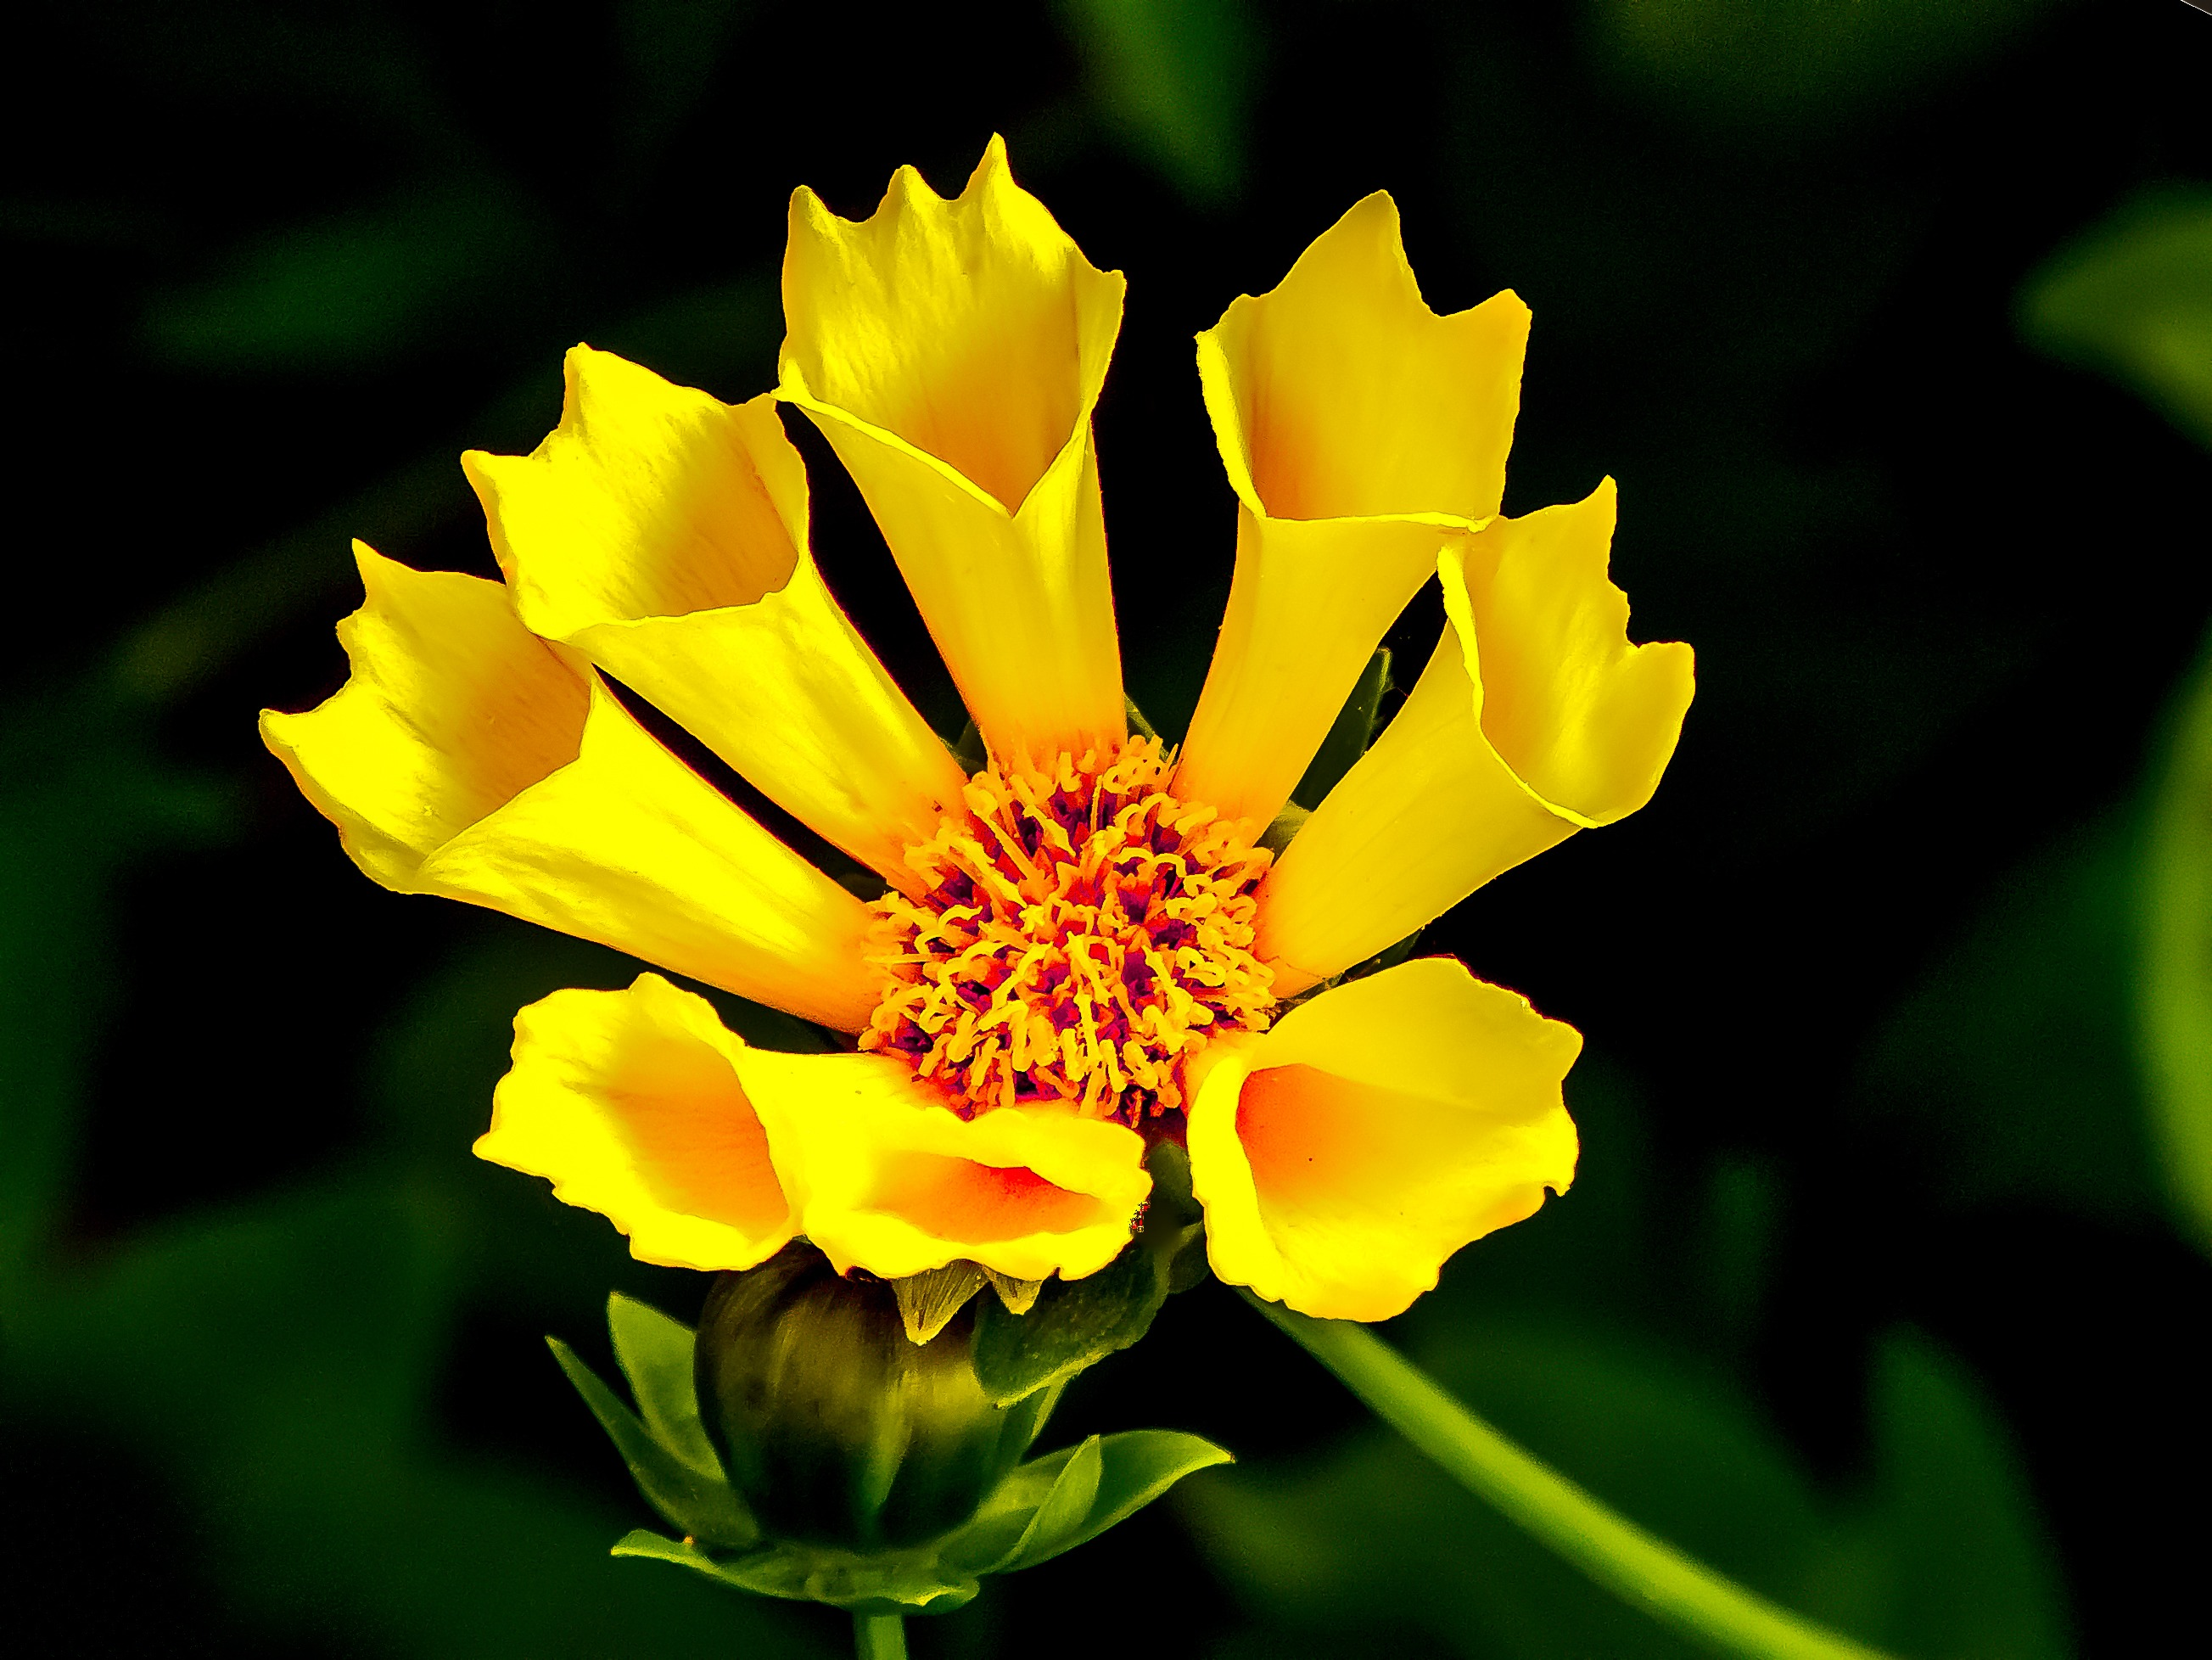 Yellow Flower in Macro Lens graphy · Free Stock